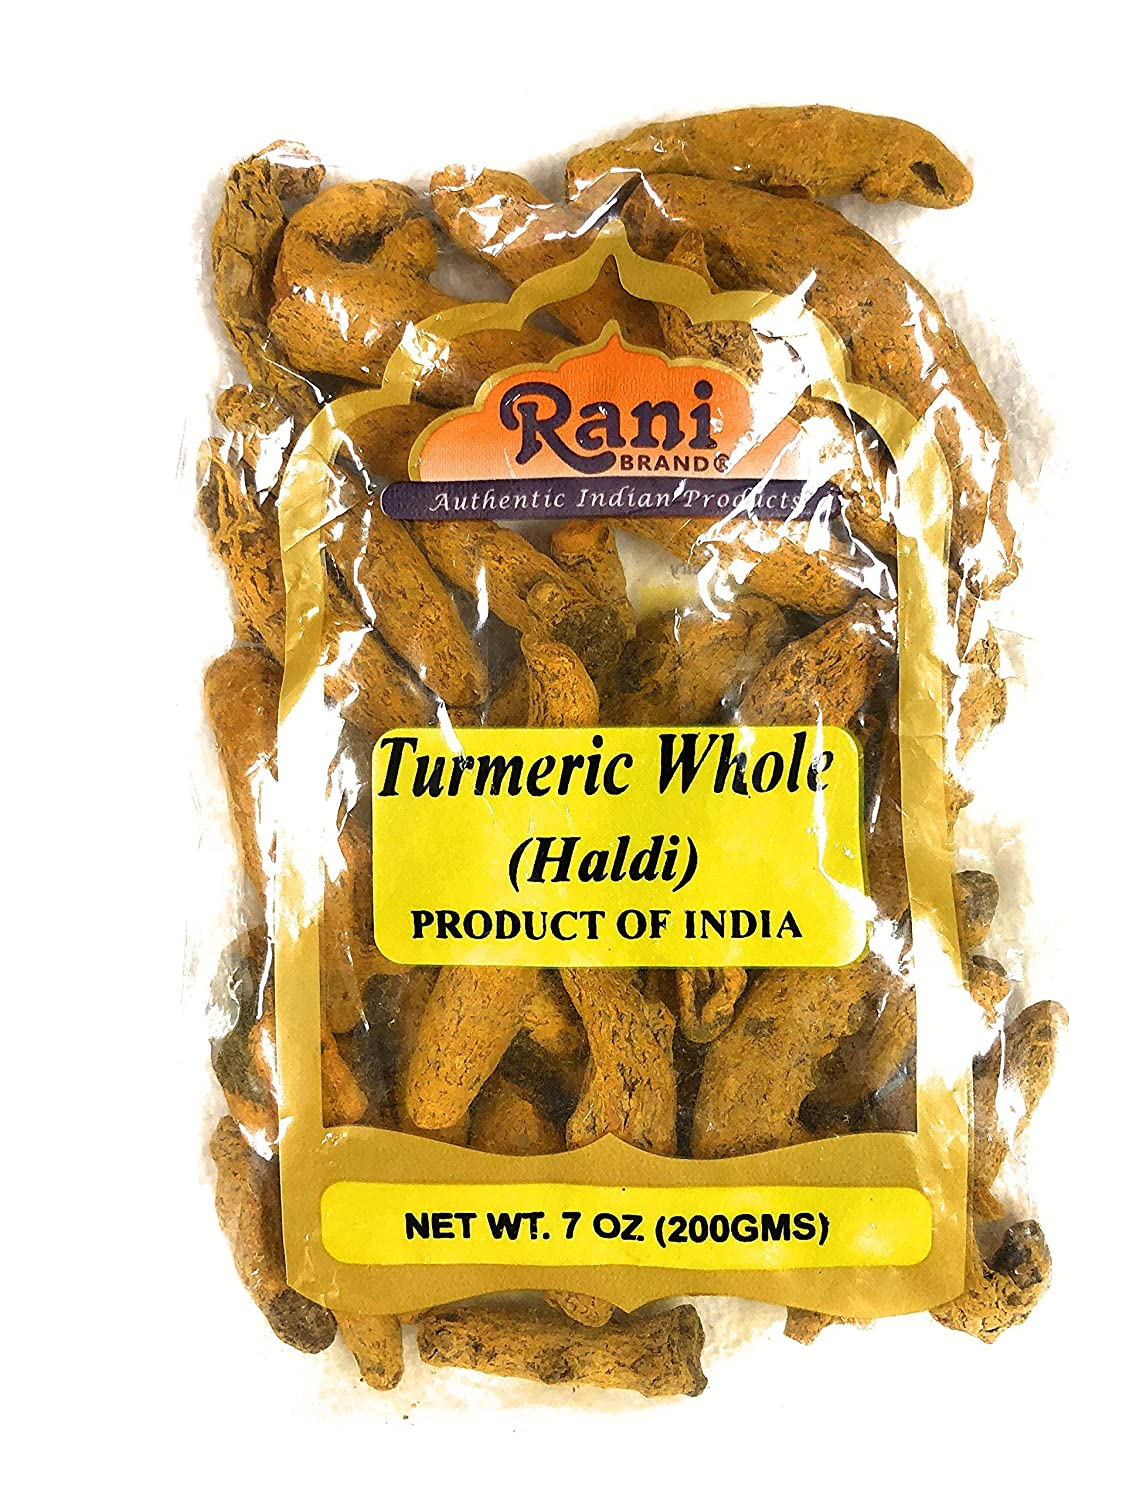 Rani Turmeric (Haldi) Root Whole Spice ~ Dried 200g (7oz) Vegan | Gluten Free Ingredients | NON-GMO | Indian Origin